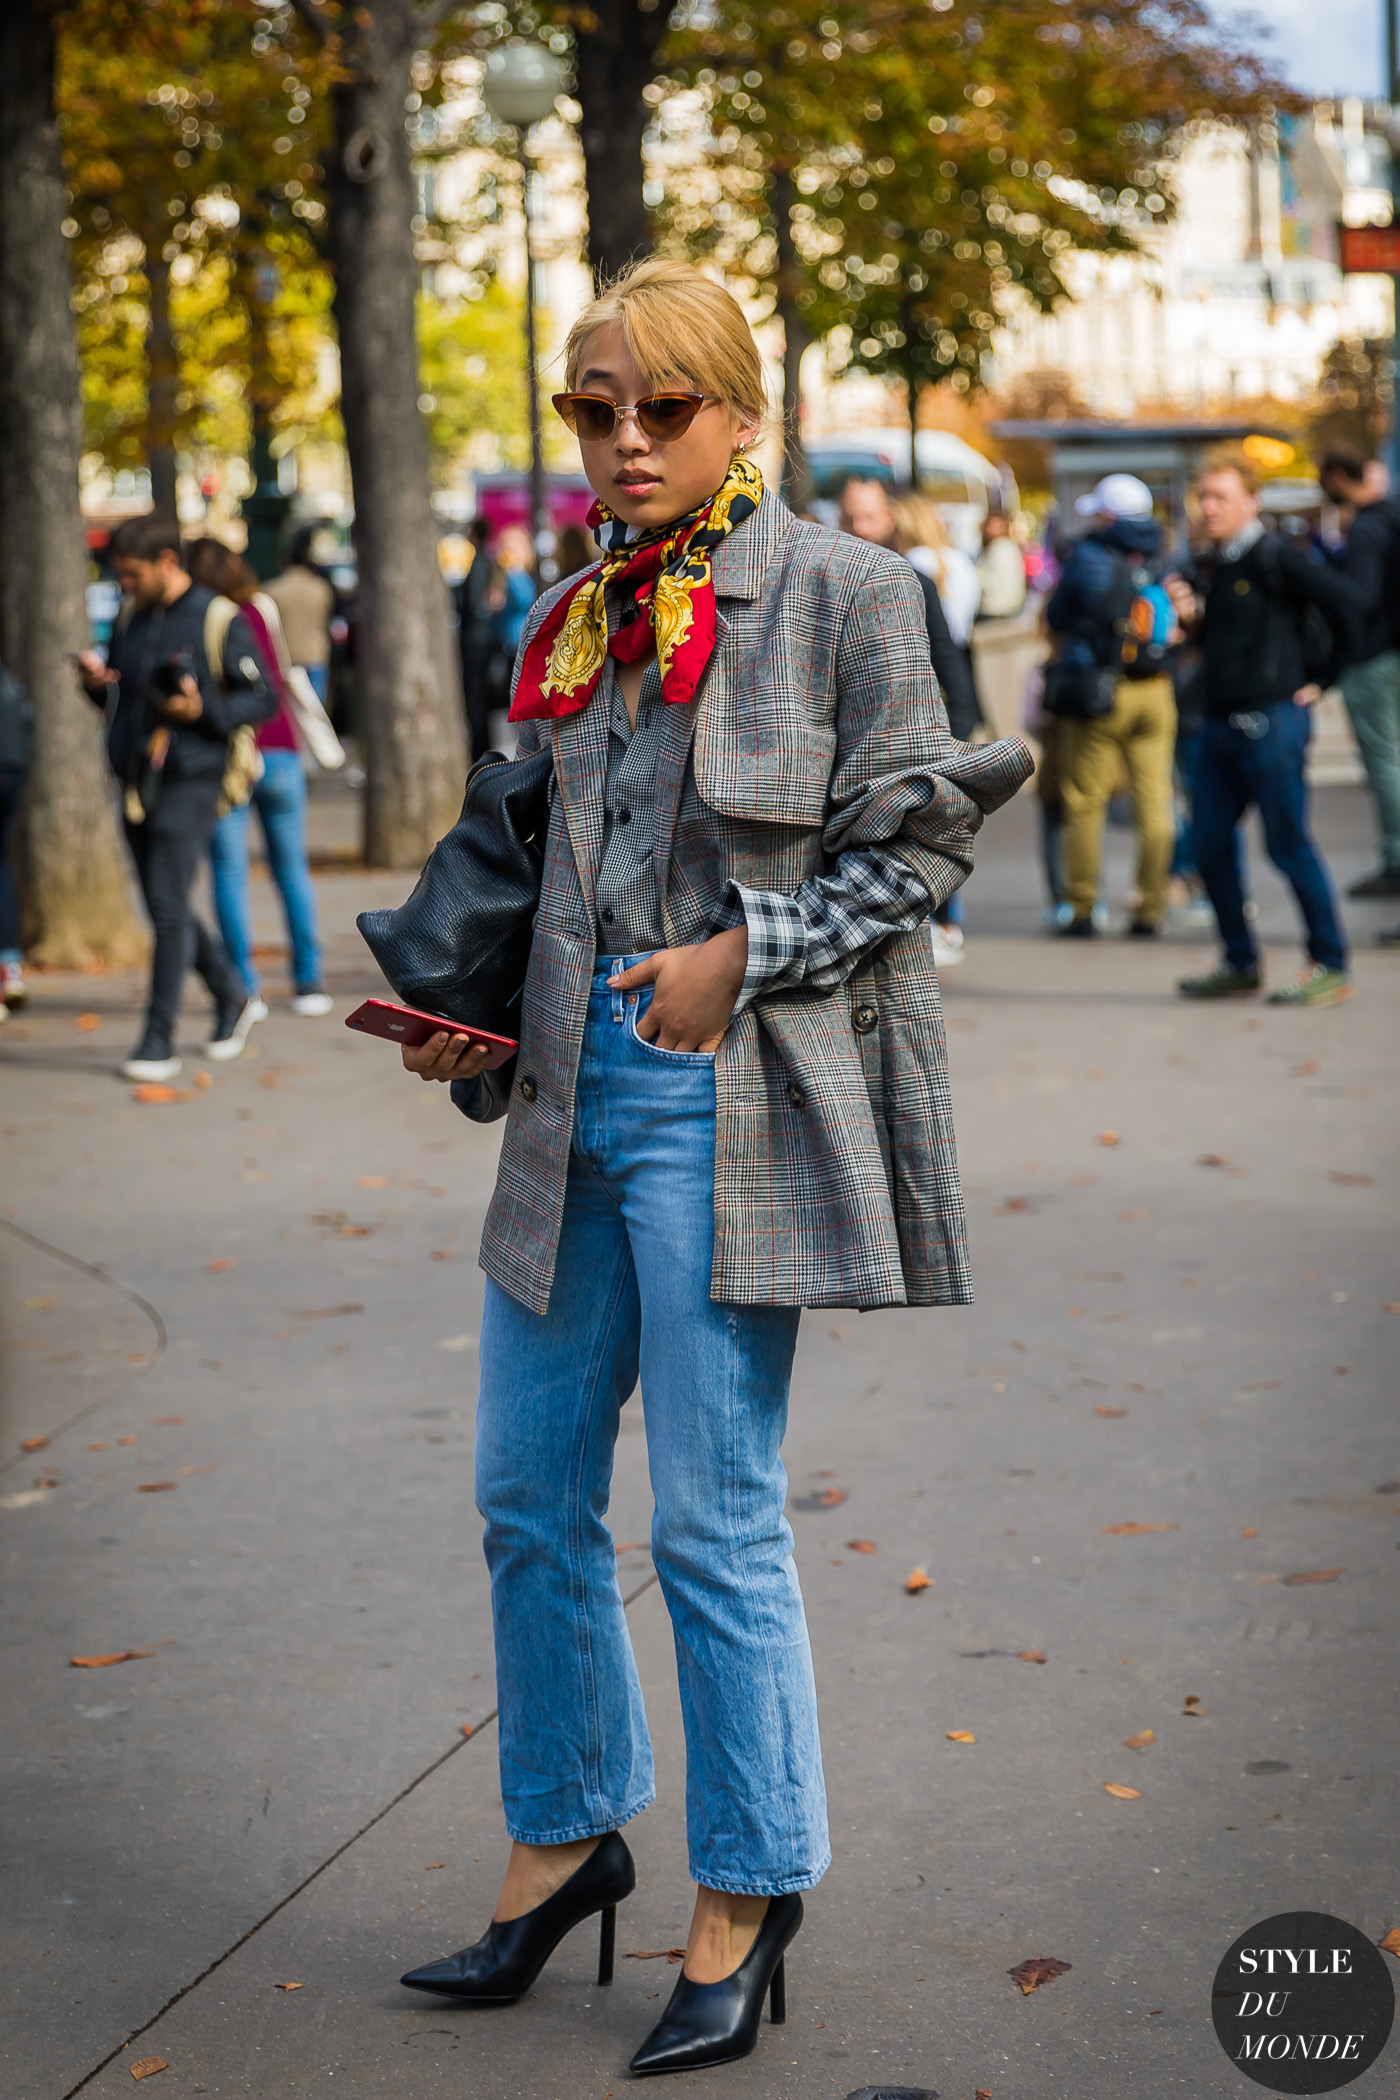 Margaret Zhang by STYLEDUMONDE Street Style Fashion Photography_48A4908